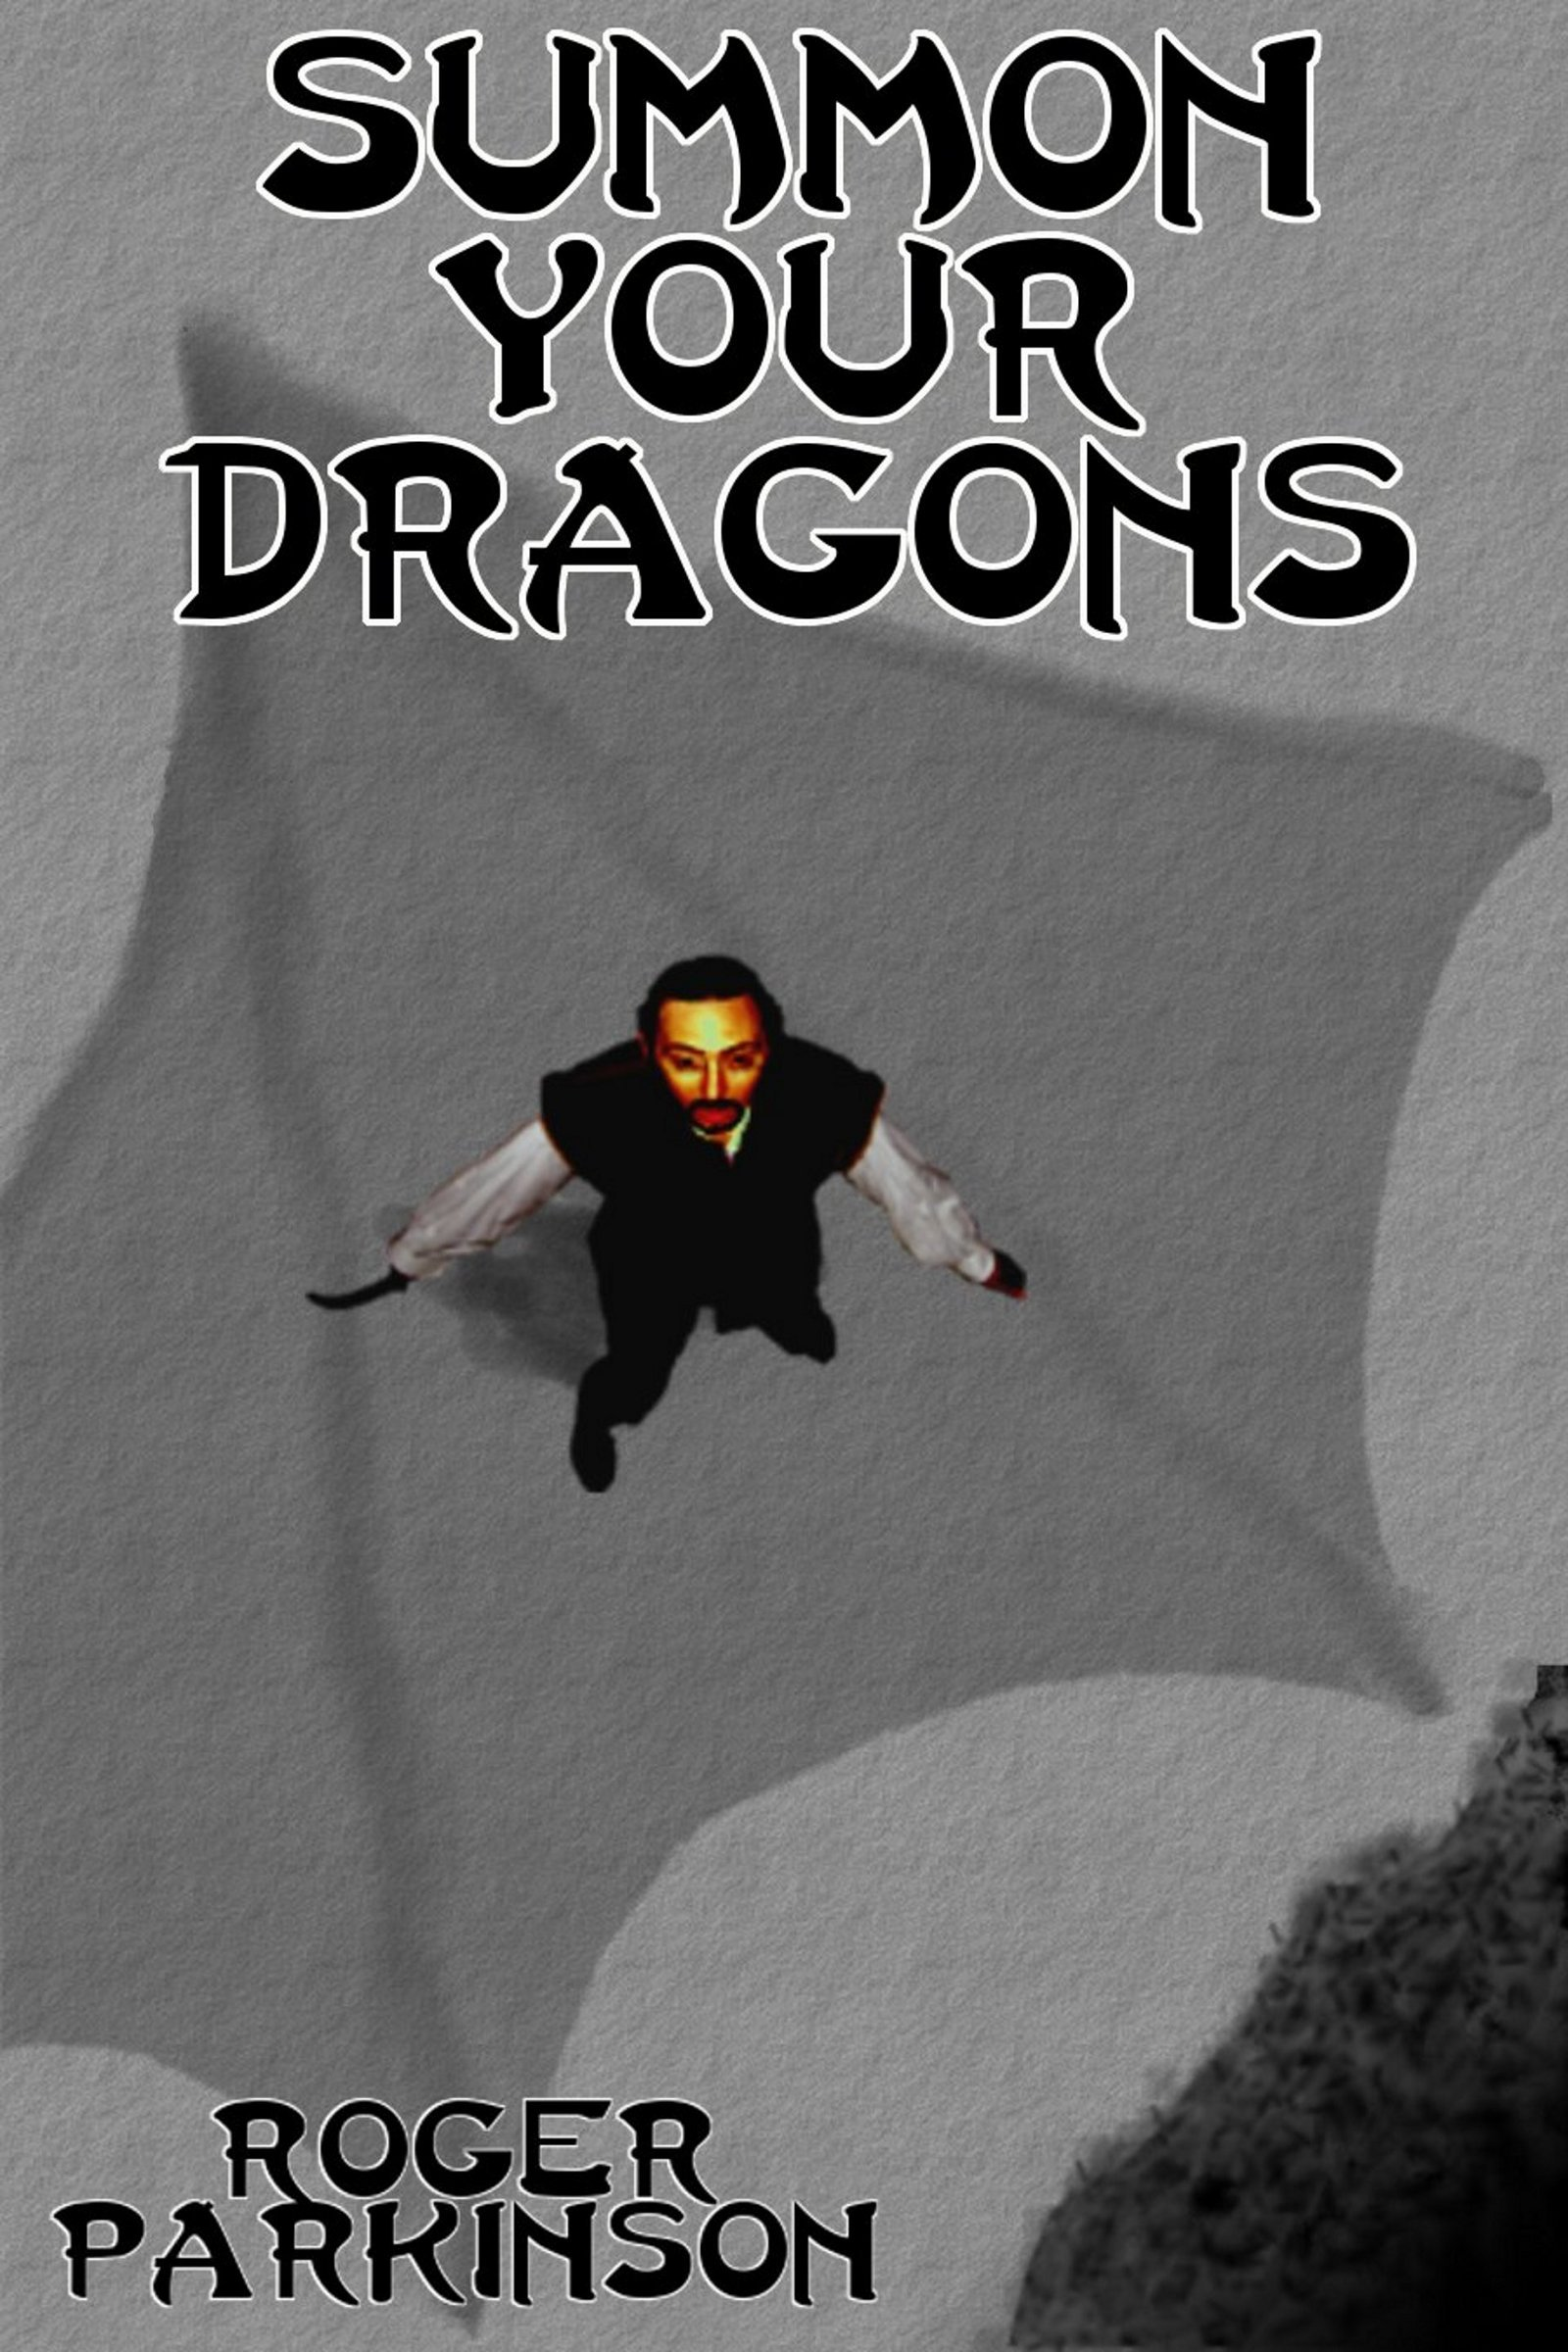 Summon Your Dragons